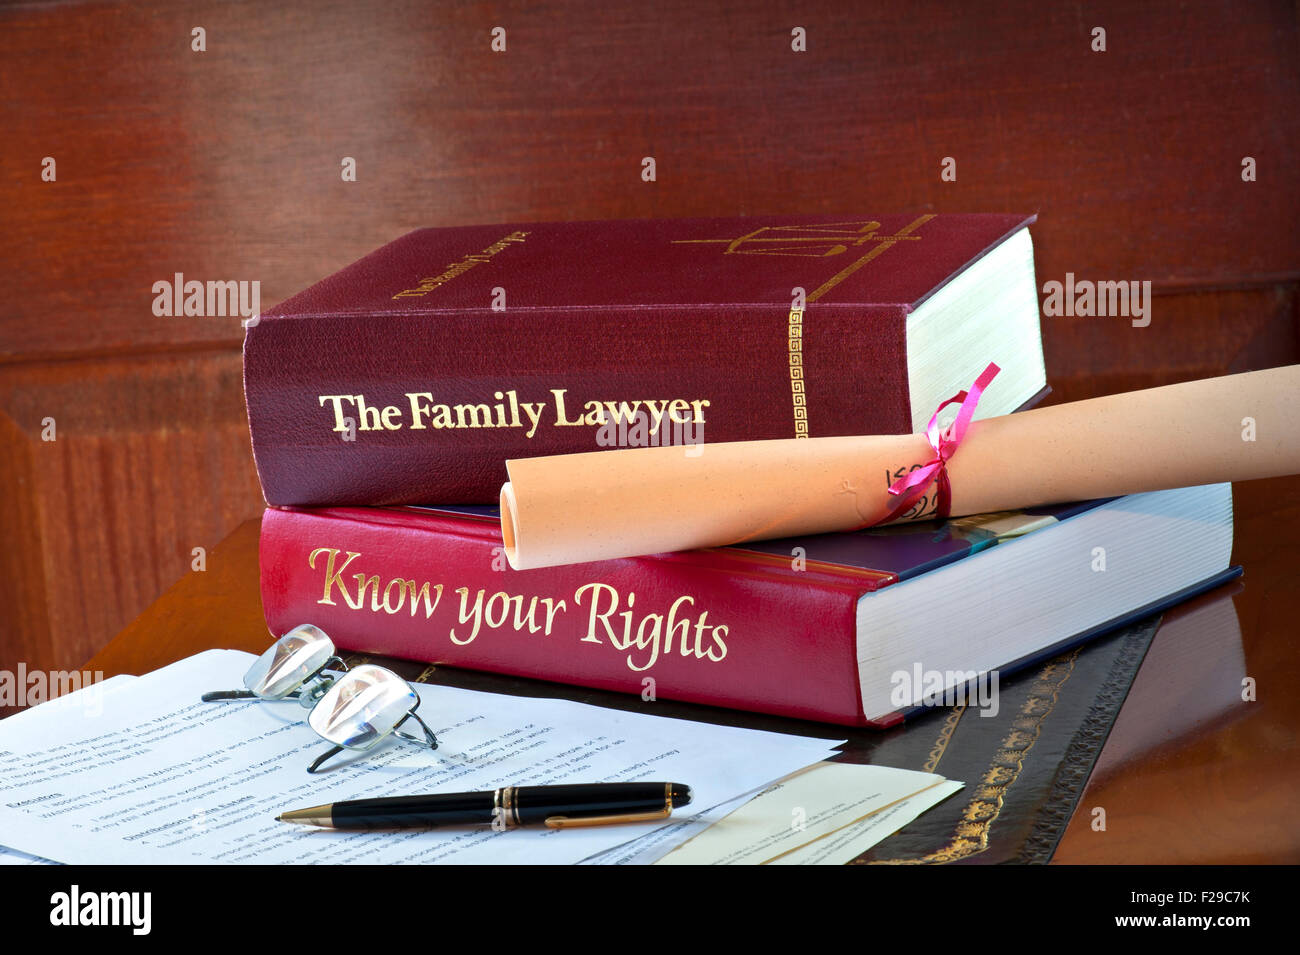 Legal concept of home reference legal advice books and legal letters and  correspondence on leather bound desk - Stock Image